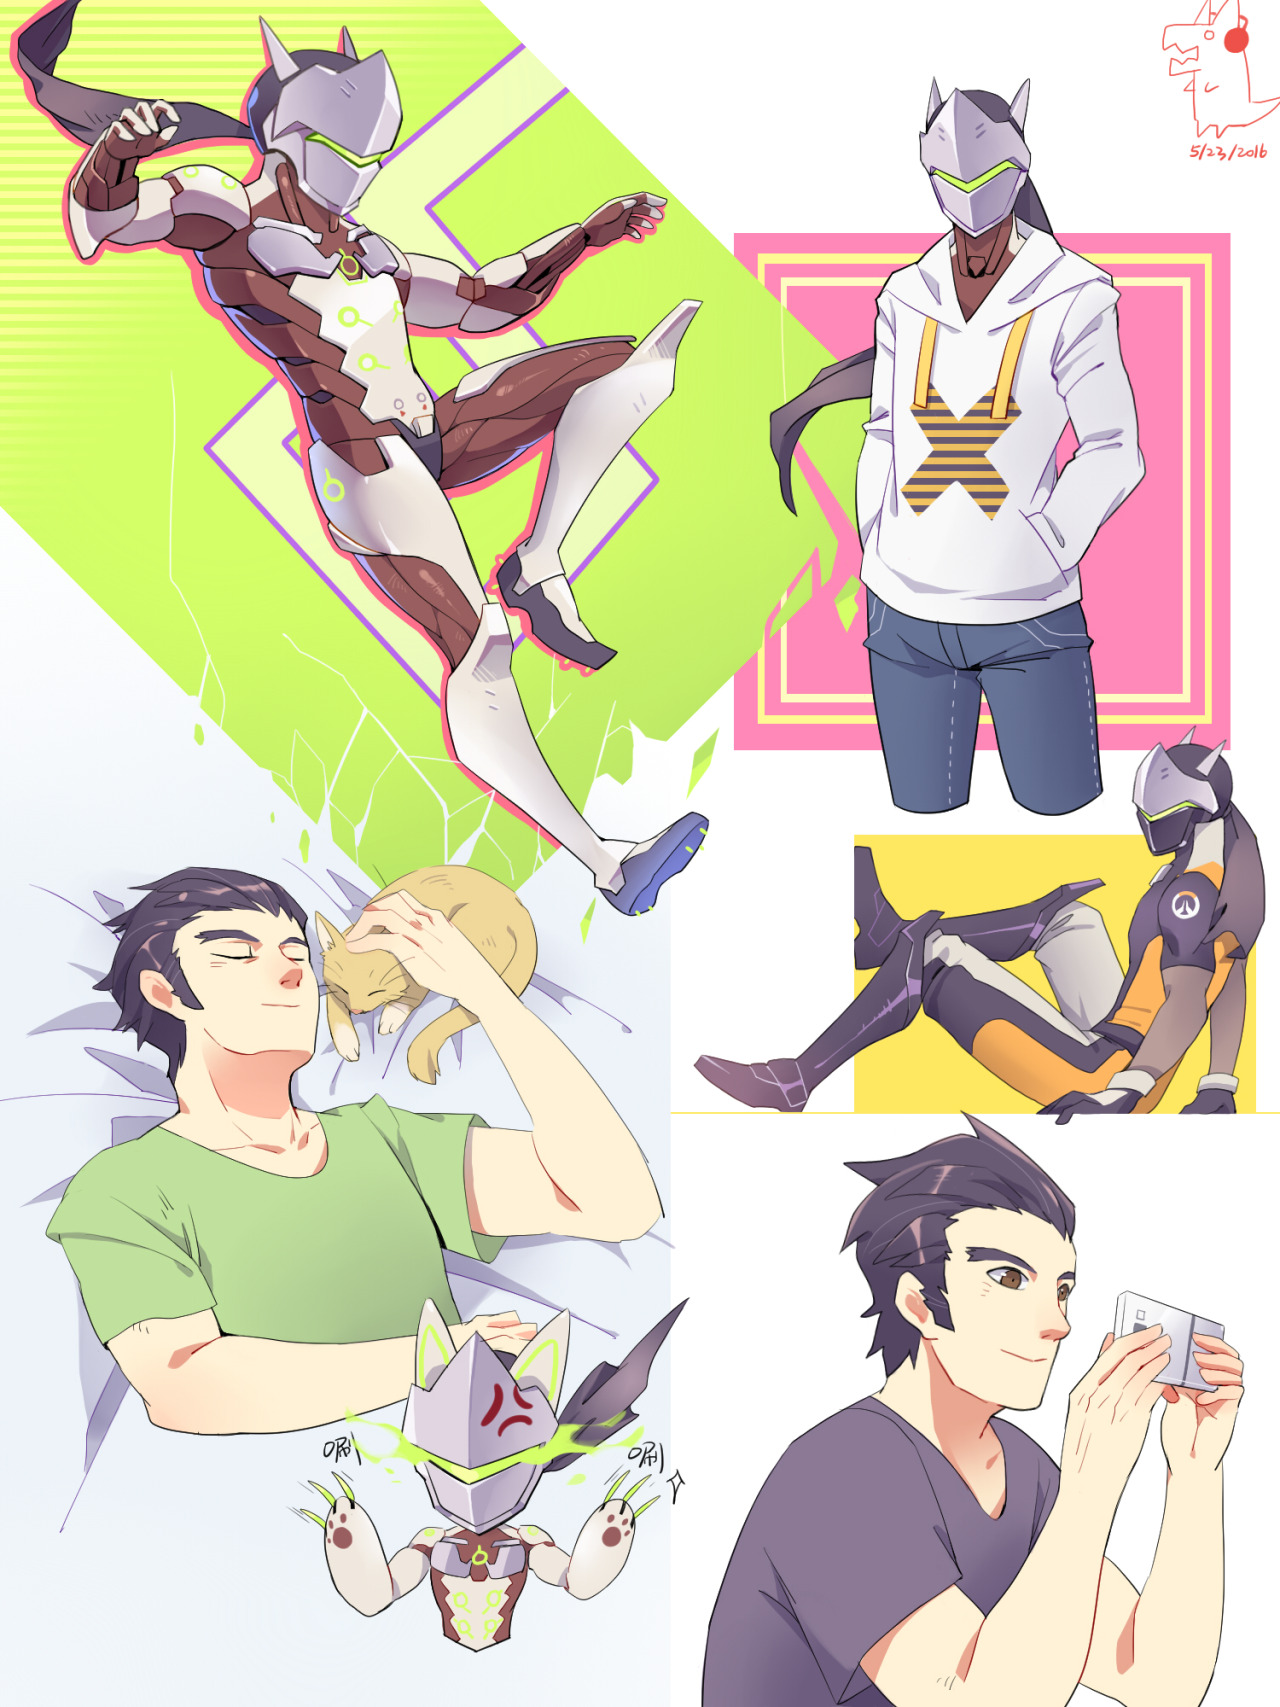 Overwatch genji clipart image free stock 17 Best ideas about Download Video Genji on Pinterest | Overwatch ... image free stock